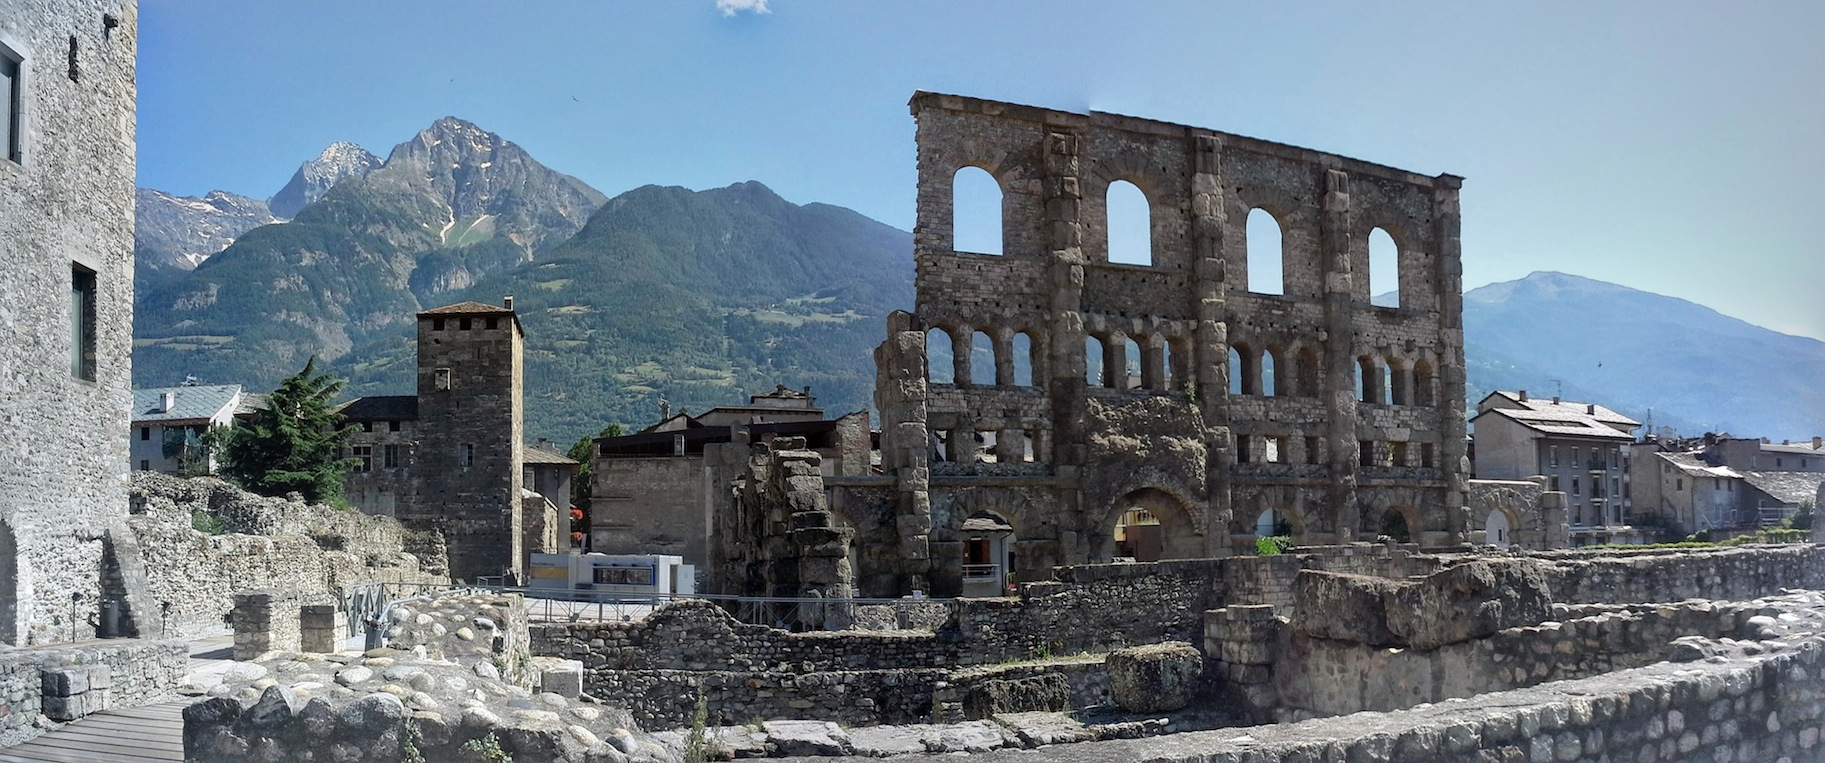 Aosta – 10 Things to do and visit